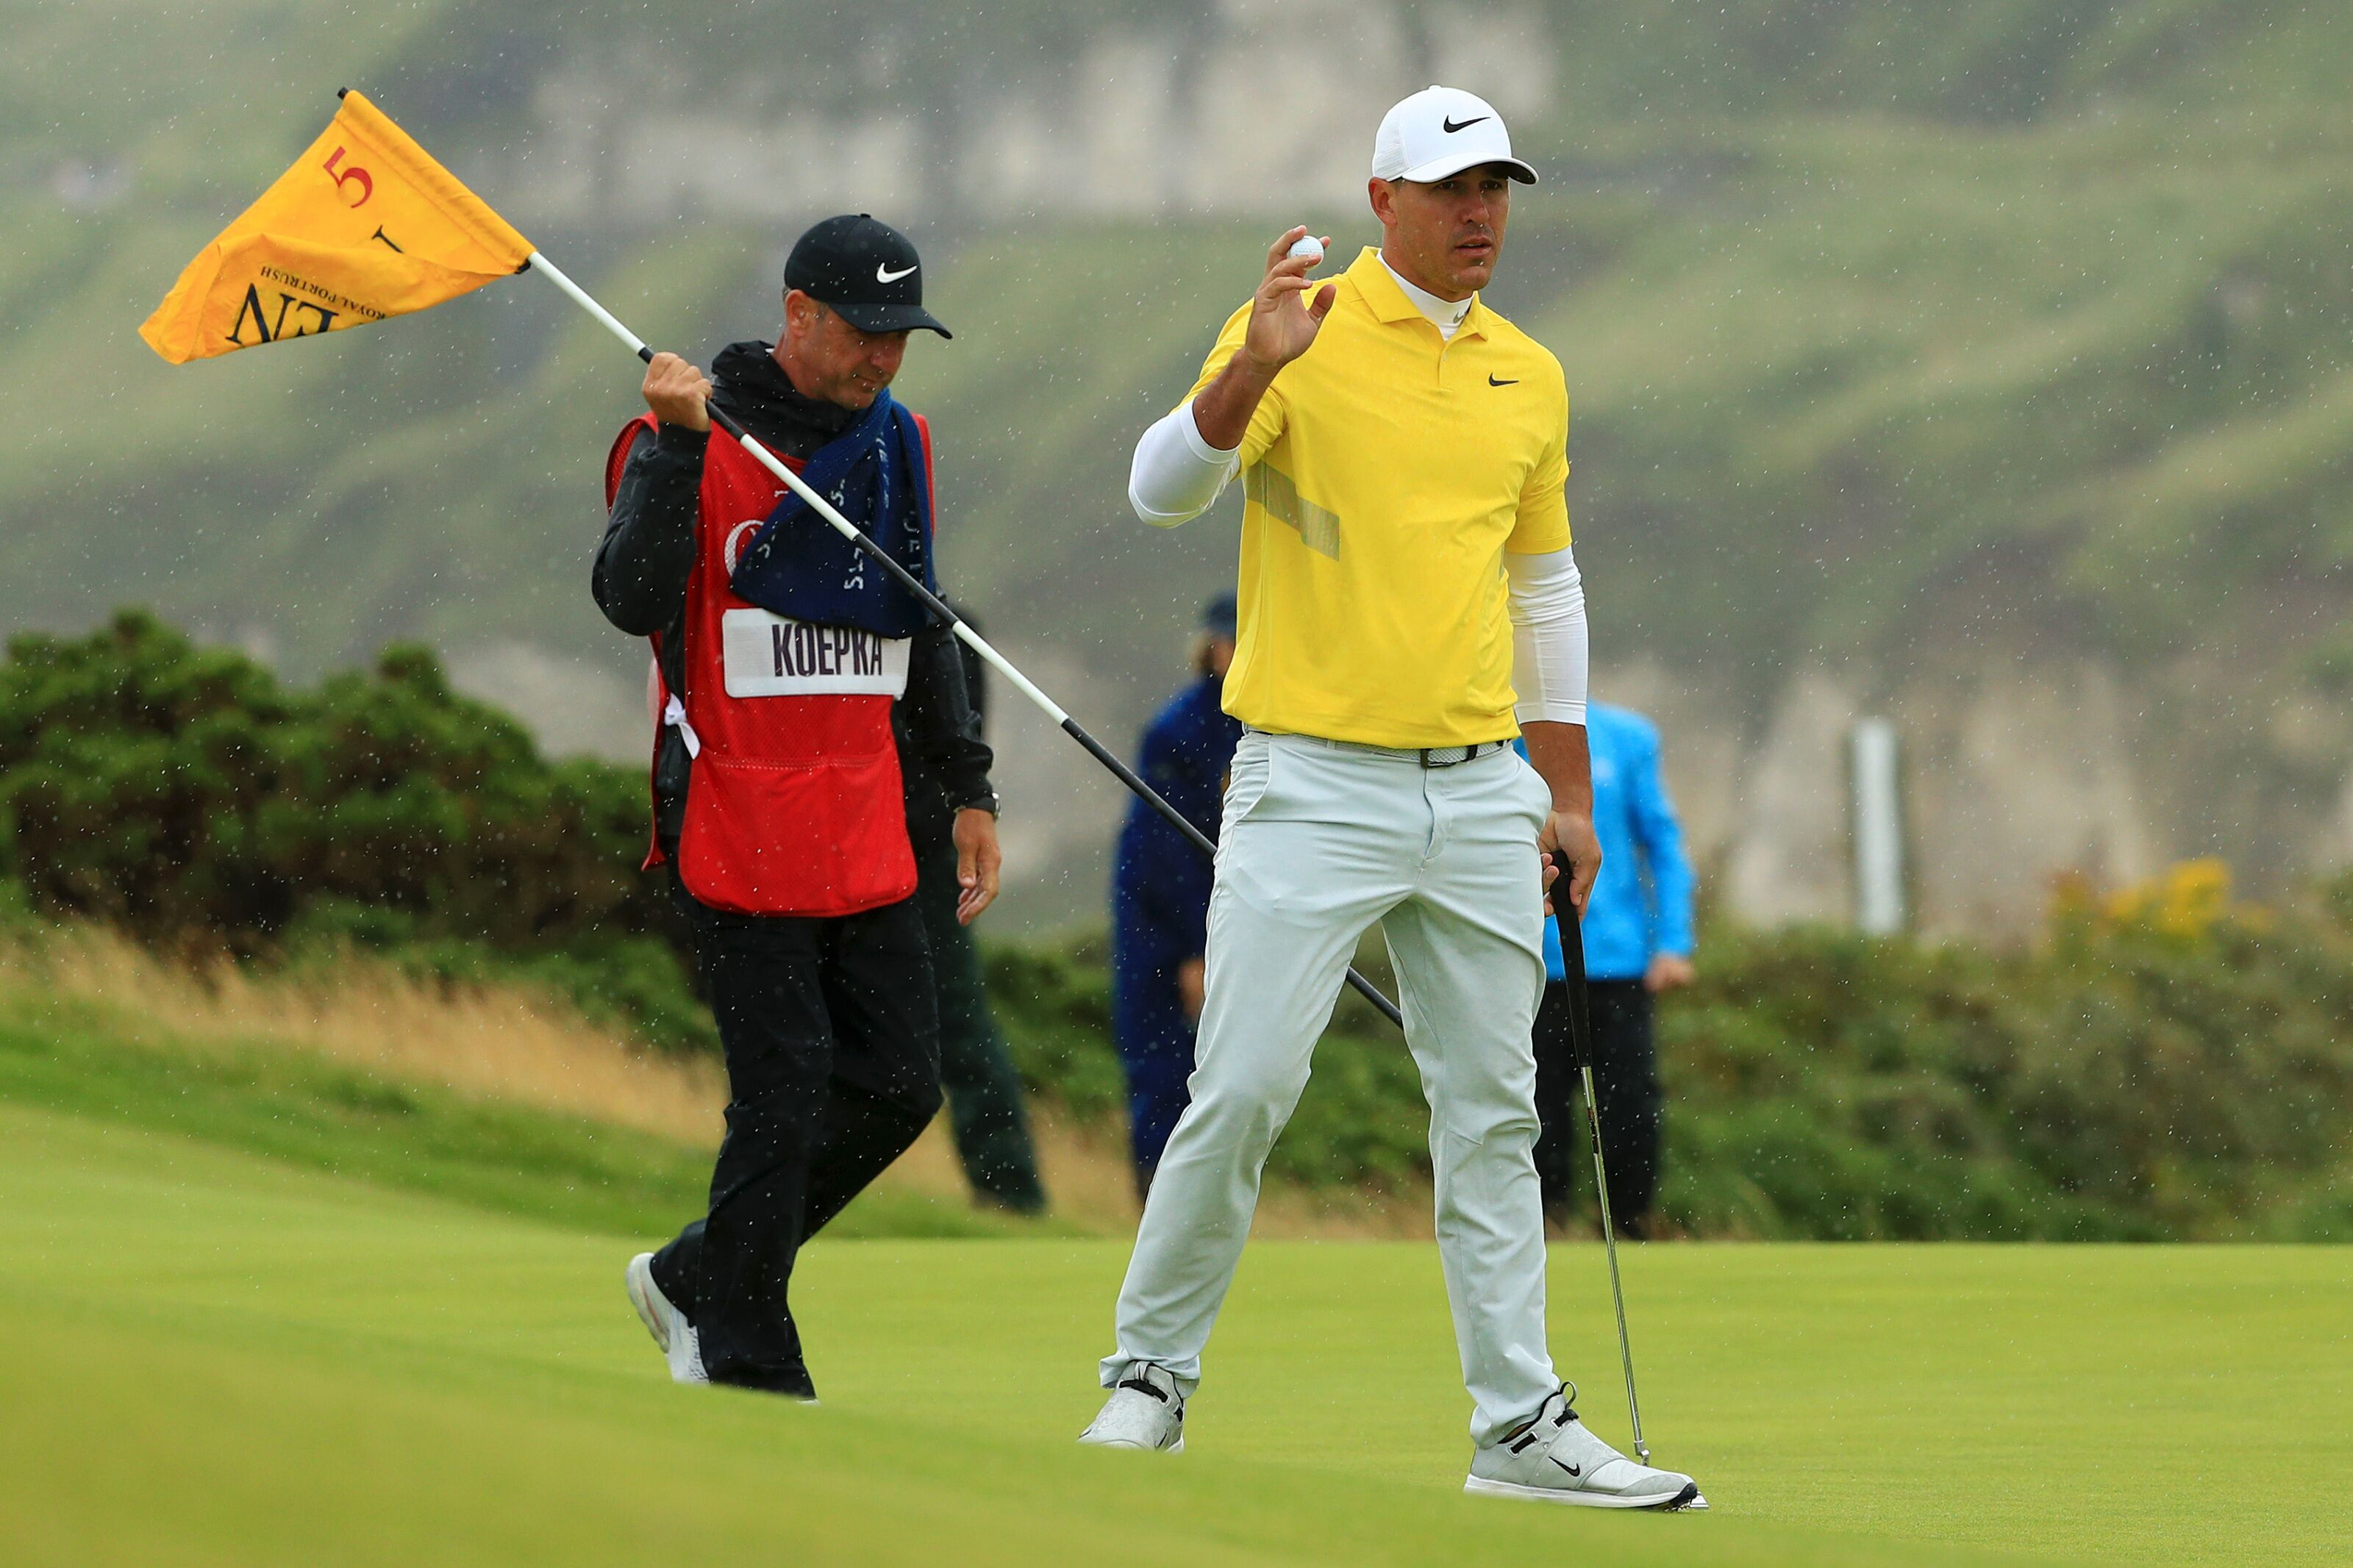 Brooks Koepka pulls no punches calling out slow play by J.B. Holmes